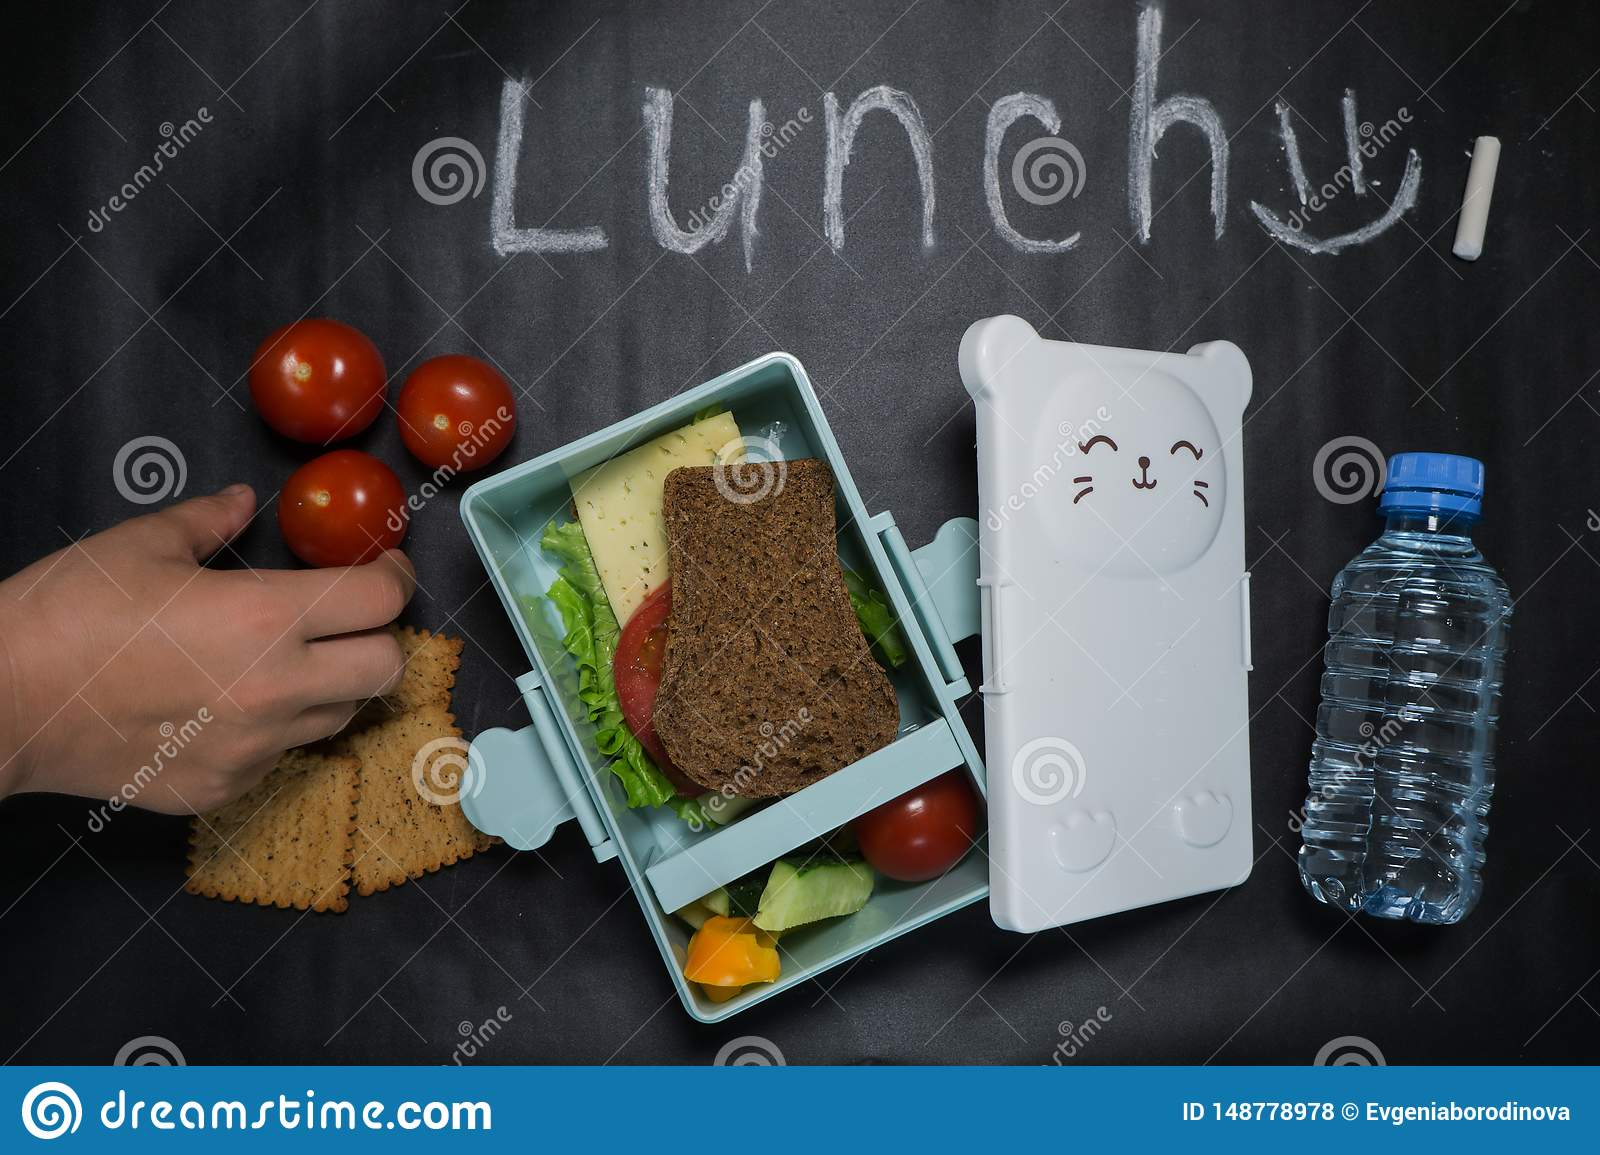 Open lunch box with a sandwich of whole grain bread, cheese, green salad, tomato, cucumber and a bottle of water on a black